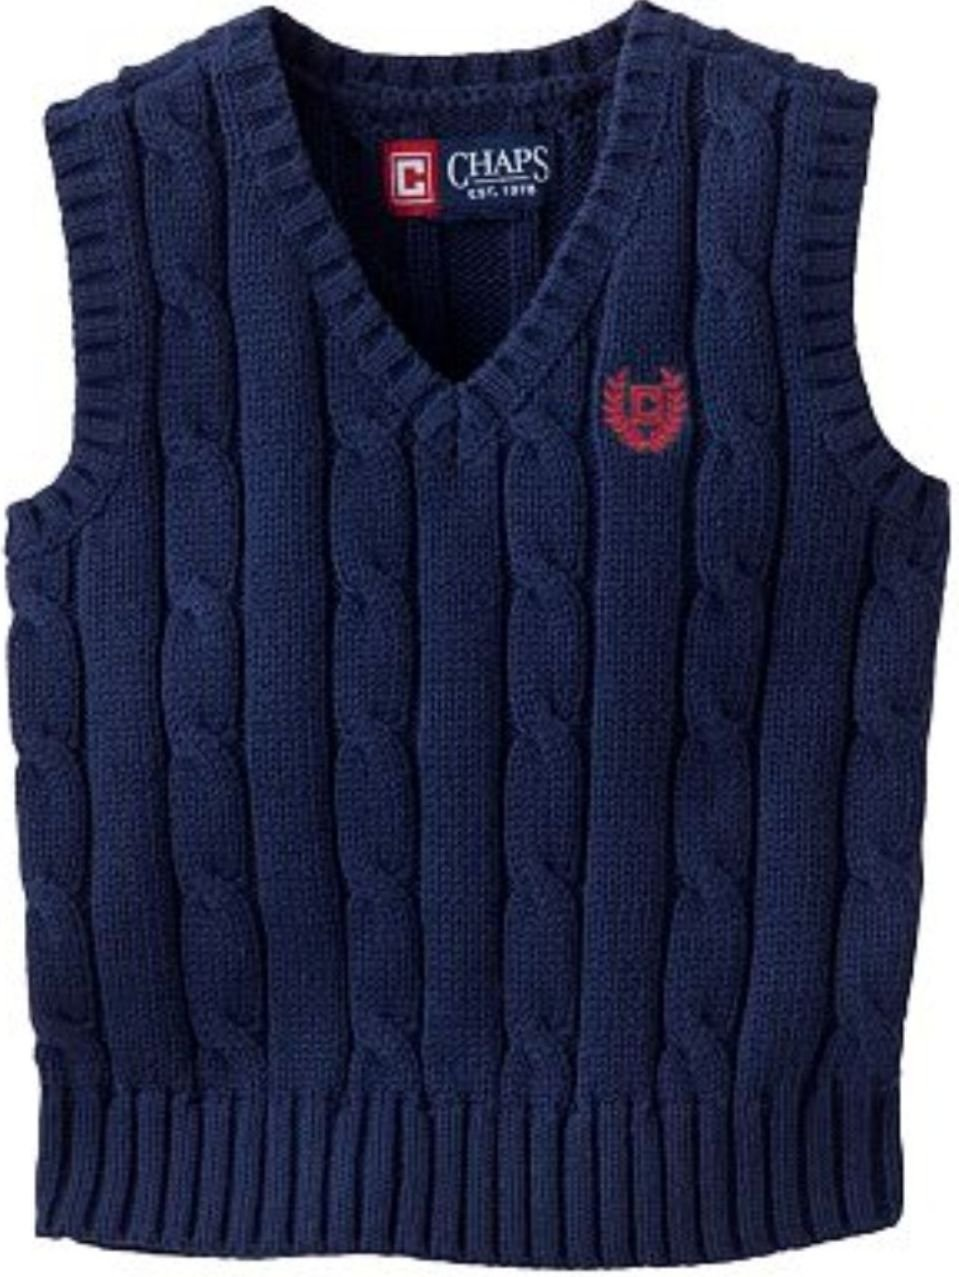 Amazon.com: Chaps Cable-knit Sweater Vest - Boys (XL (18-20)): Baby